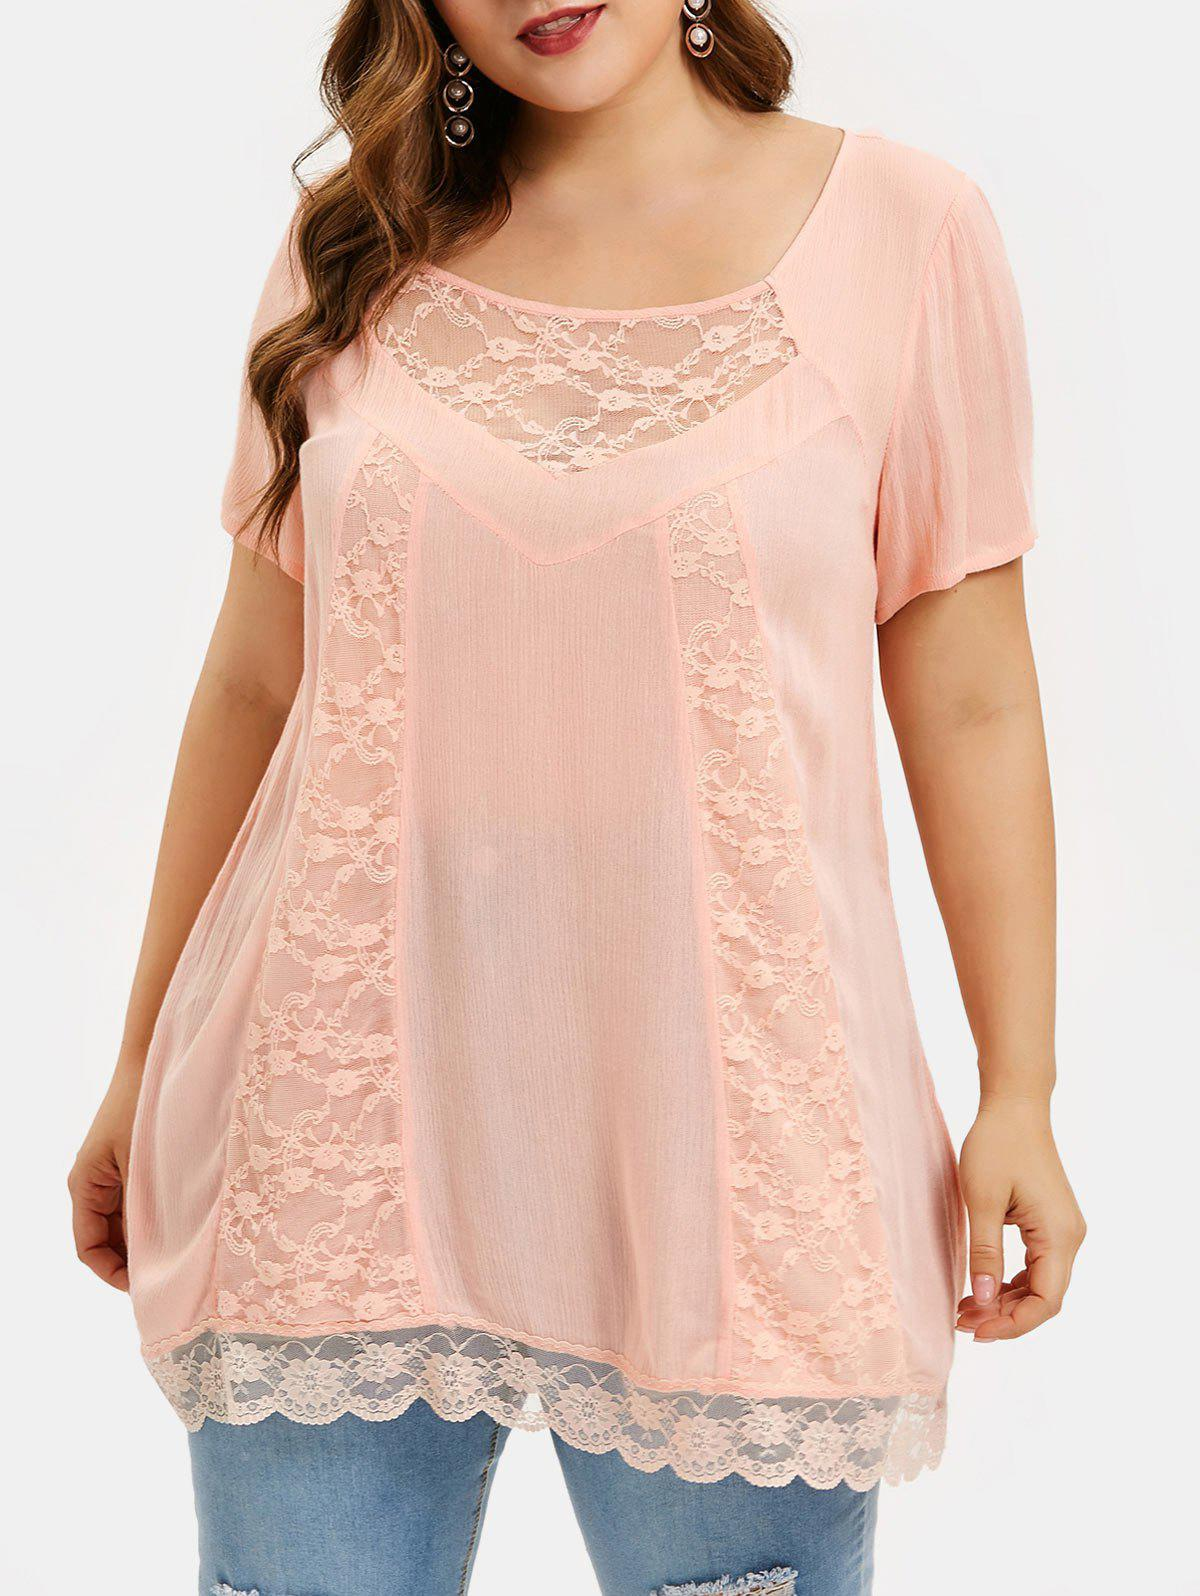 Plus Size See Thru Lace Insert Tunic T Shirt - DEEP PEACH L